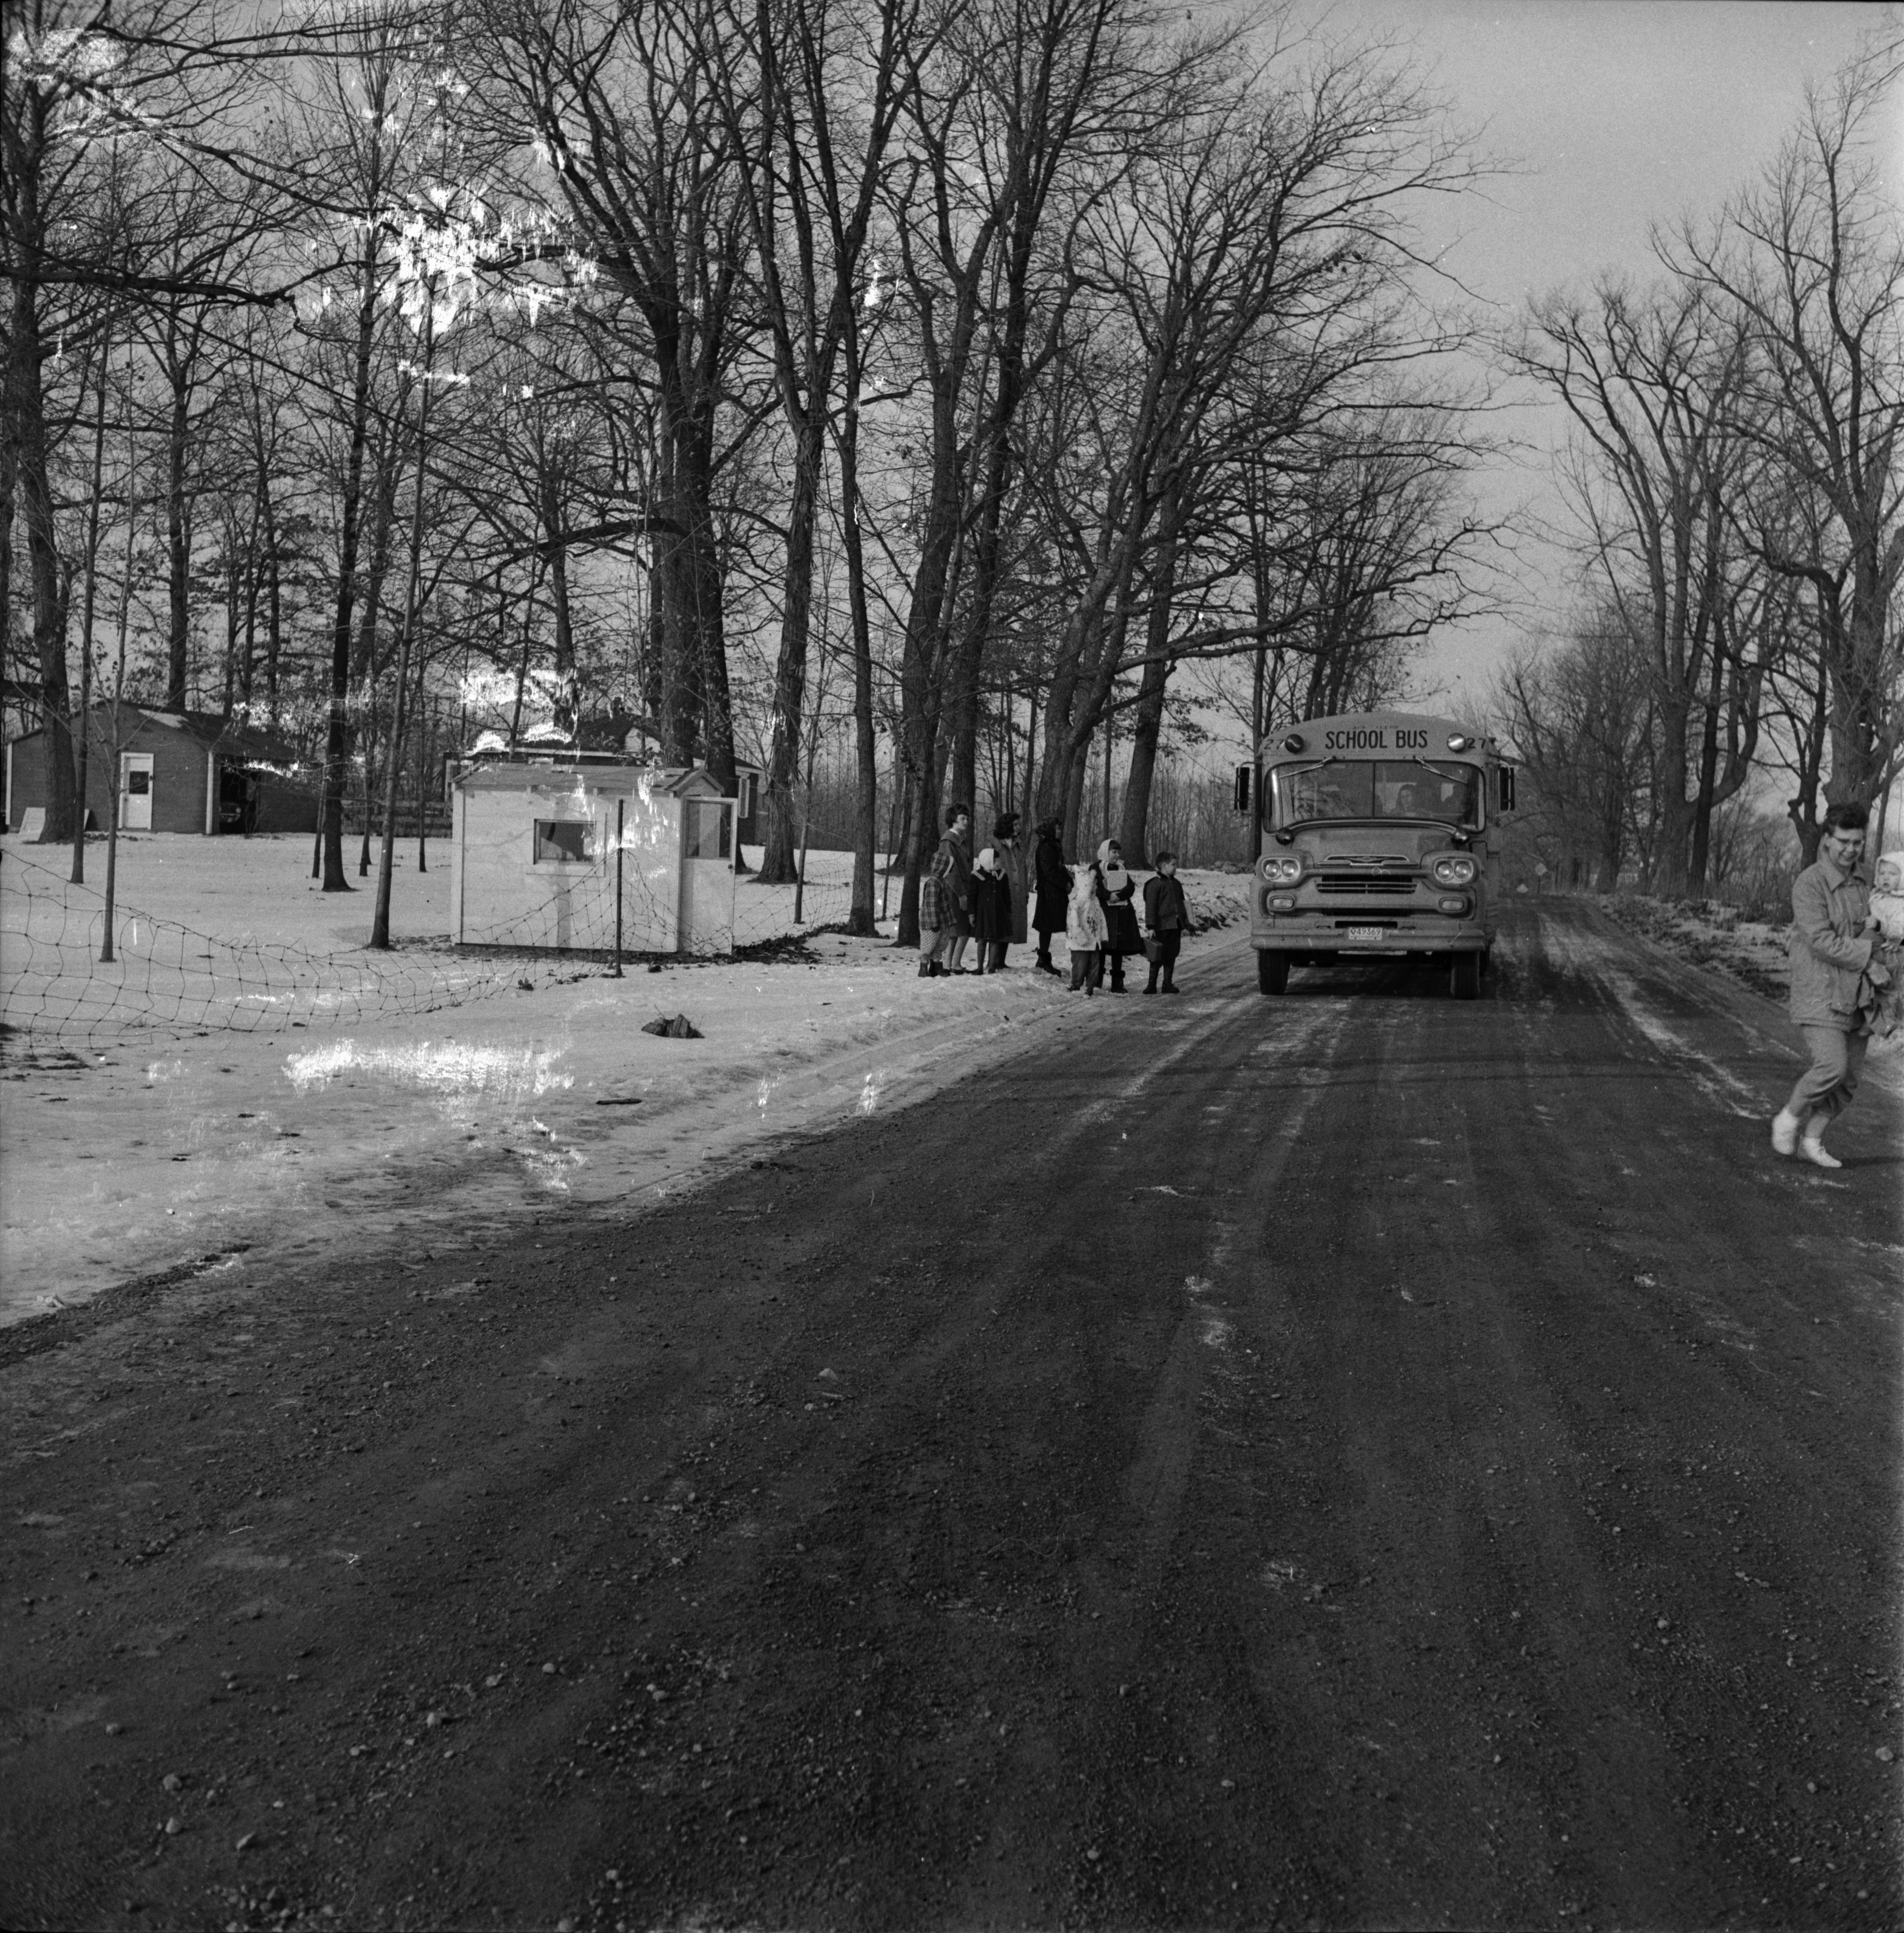 School Bus Waiting Shelter on Waters Road, January 1963 image